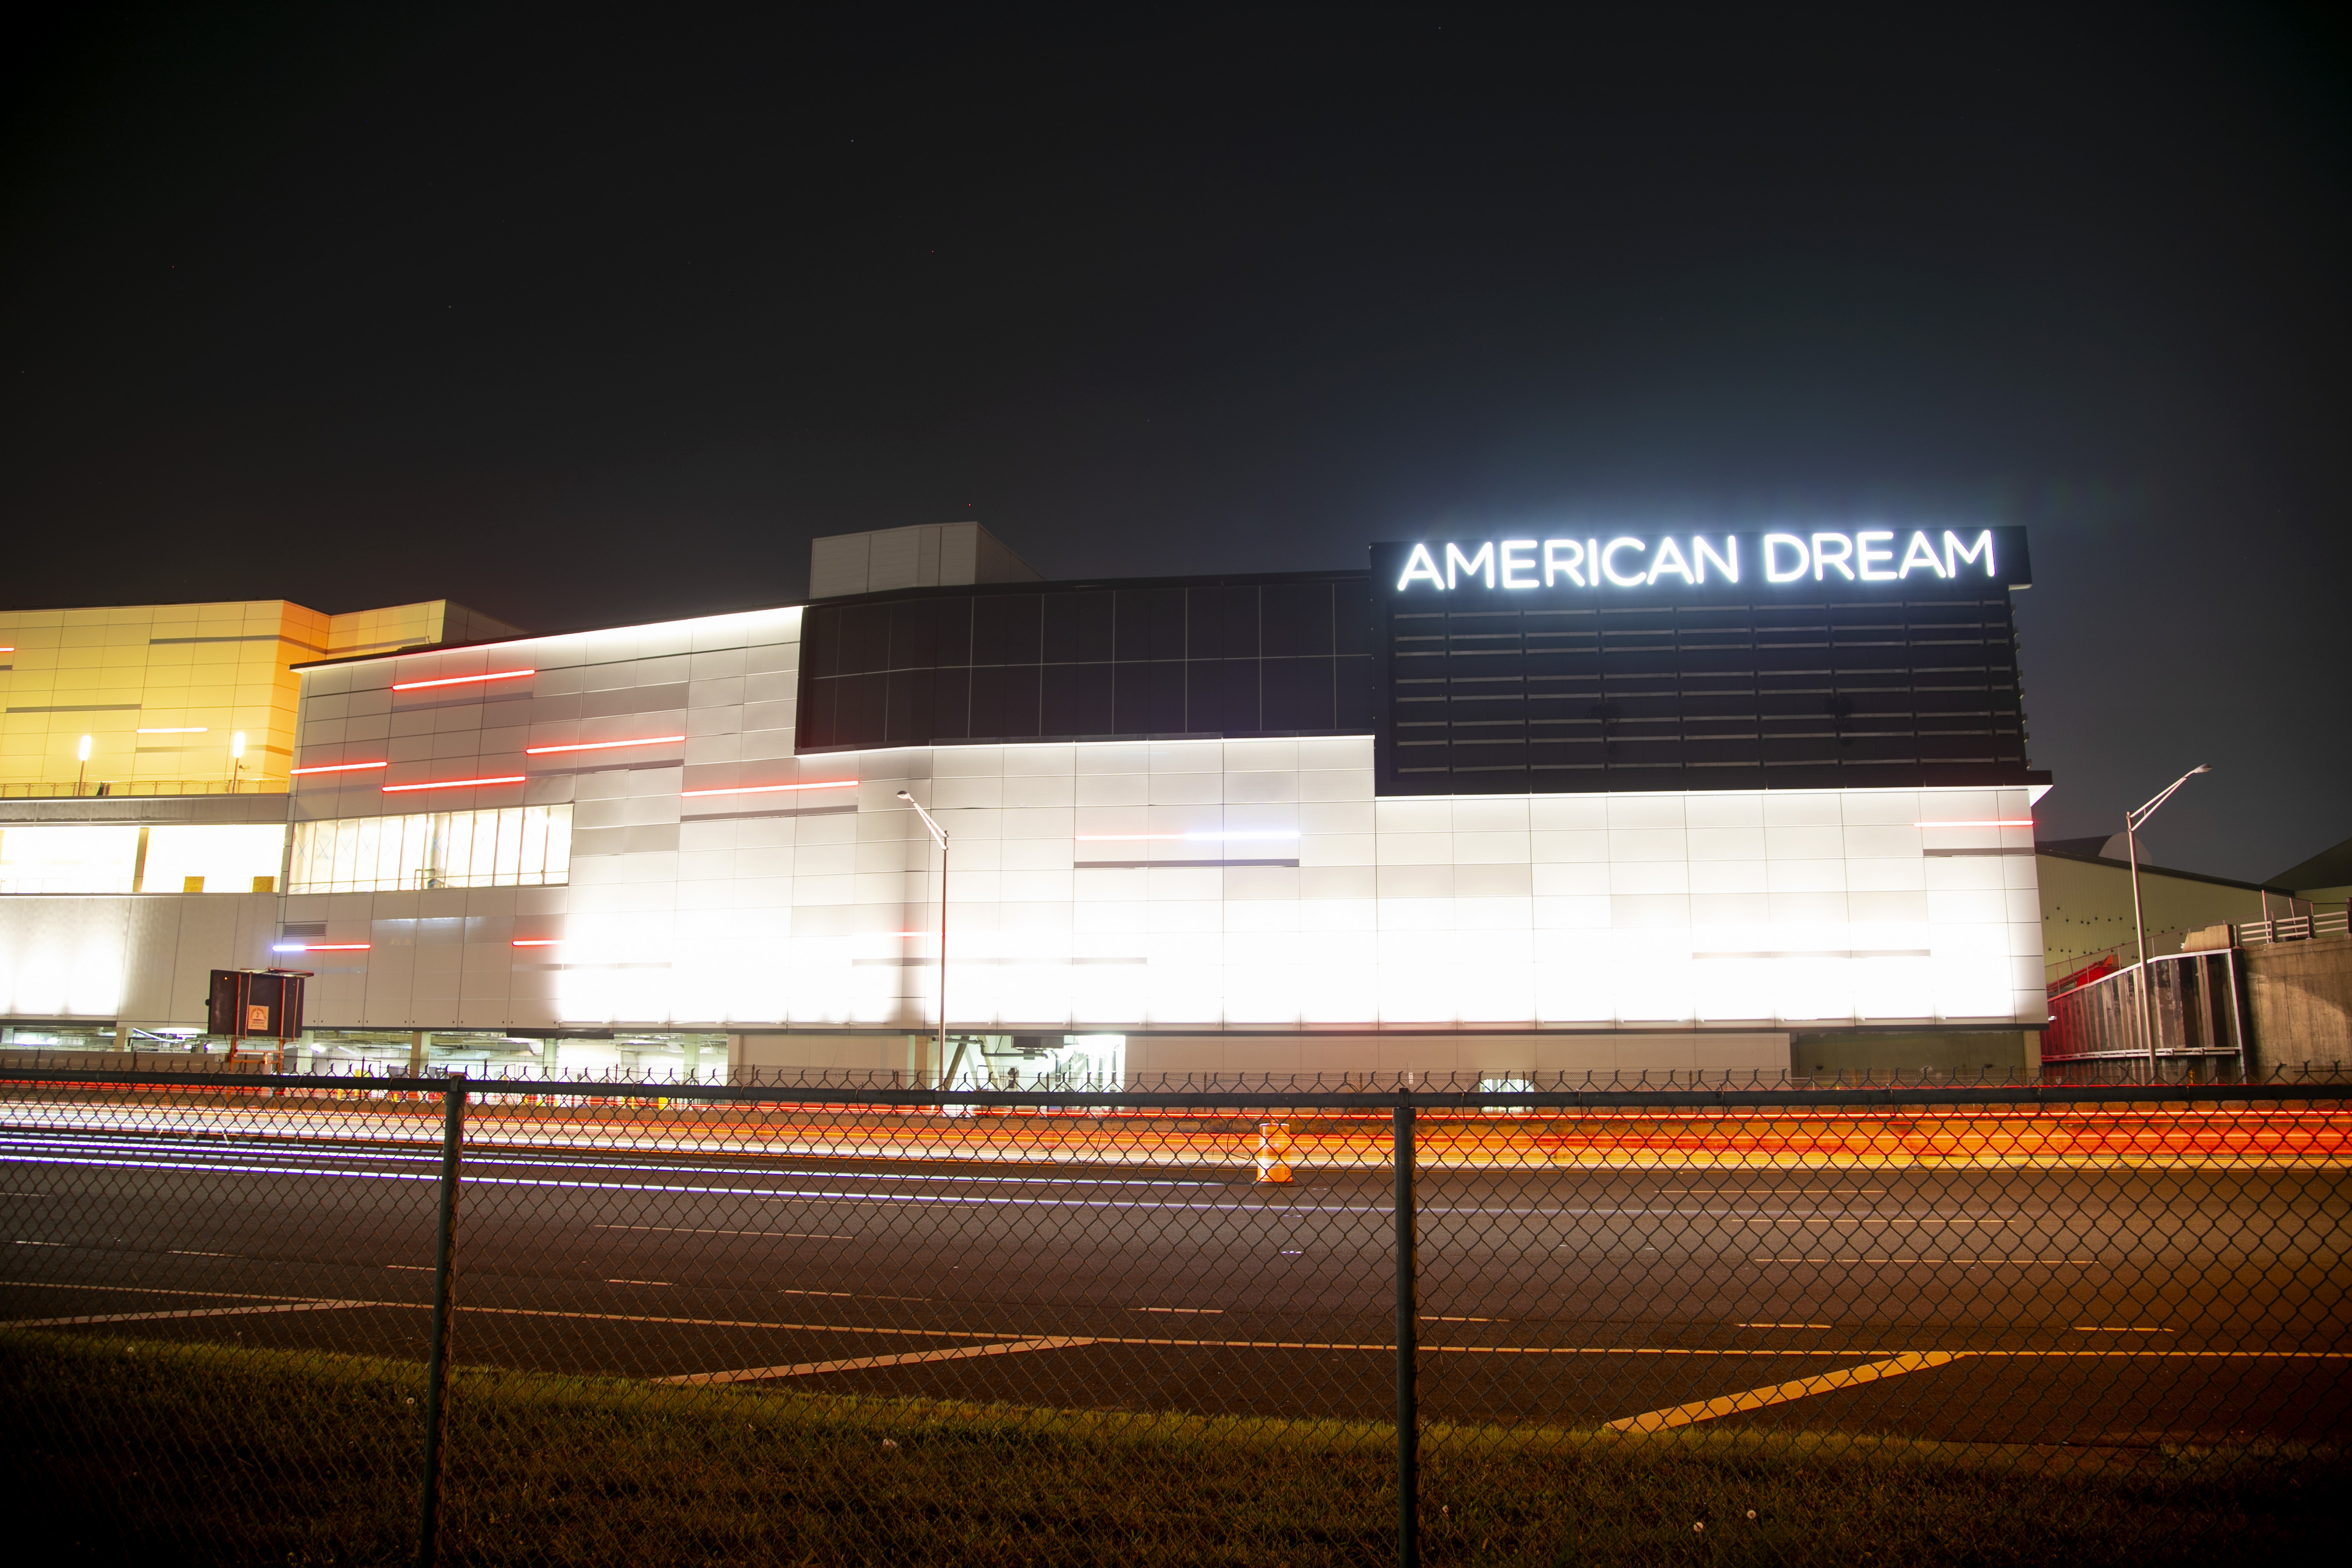 American Dream opens Friday. We still don't know the hours of the mall, or if parking is free.